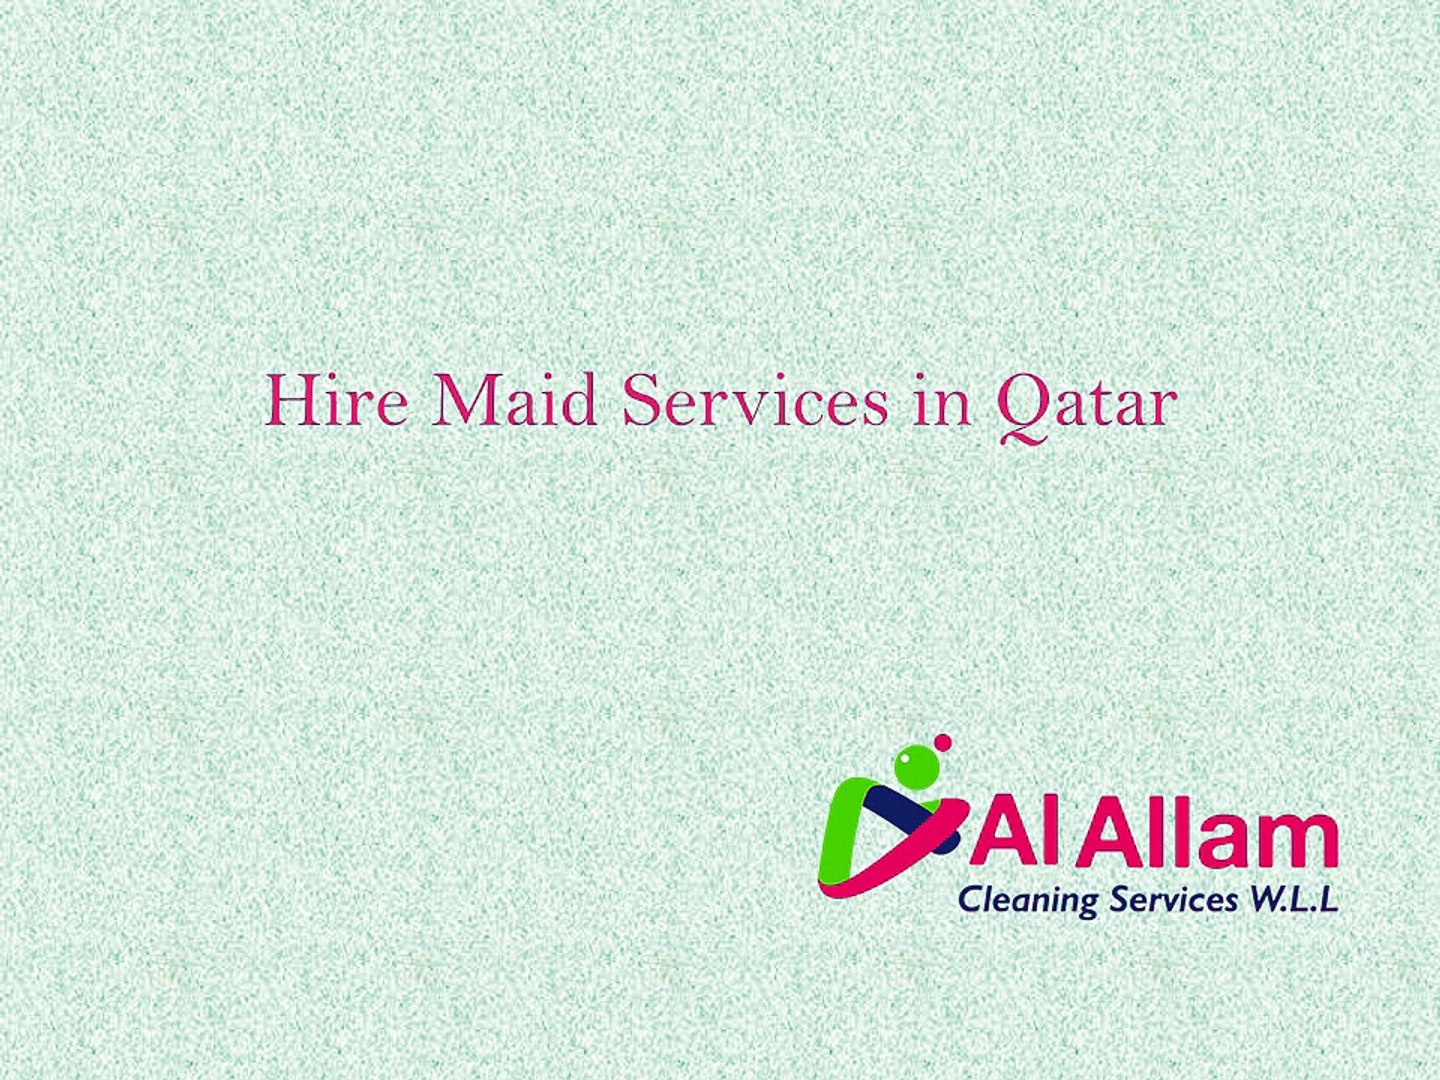 Reasons To Hire Maid Services In Qatar